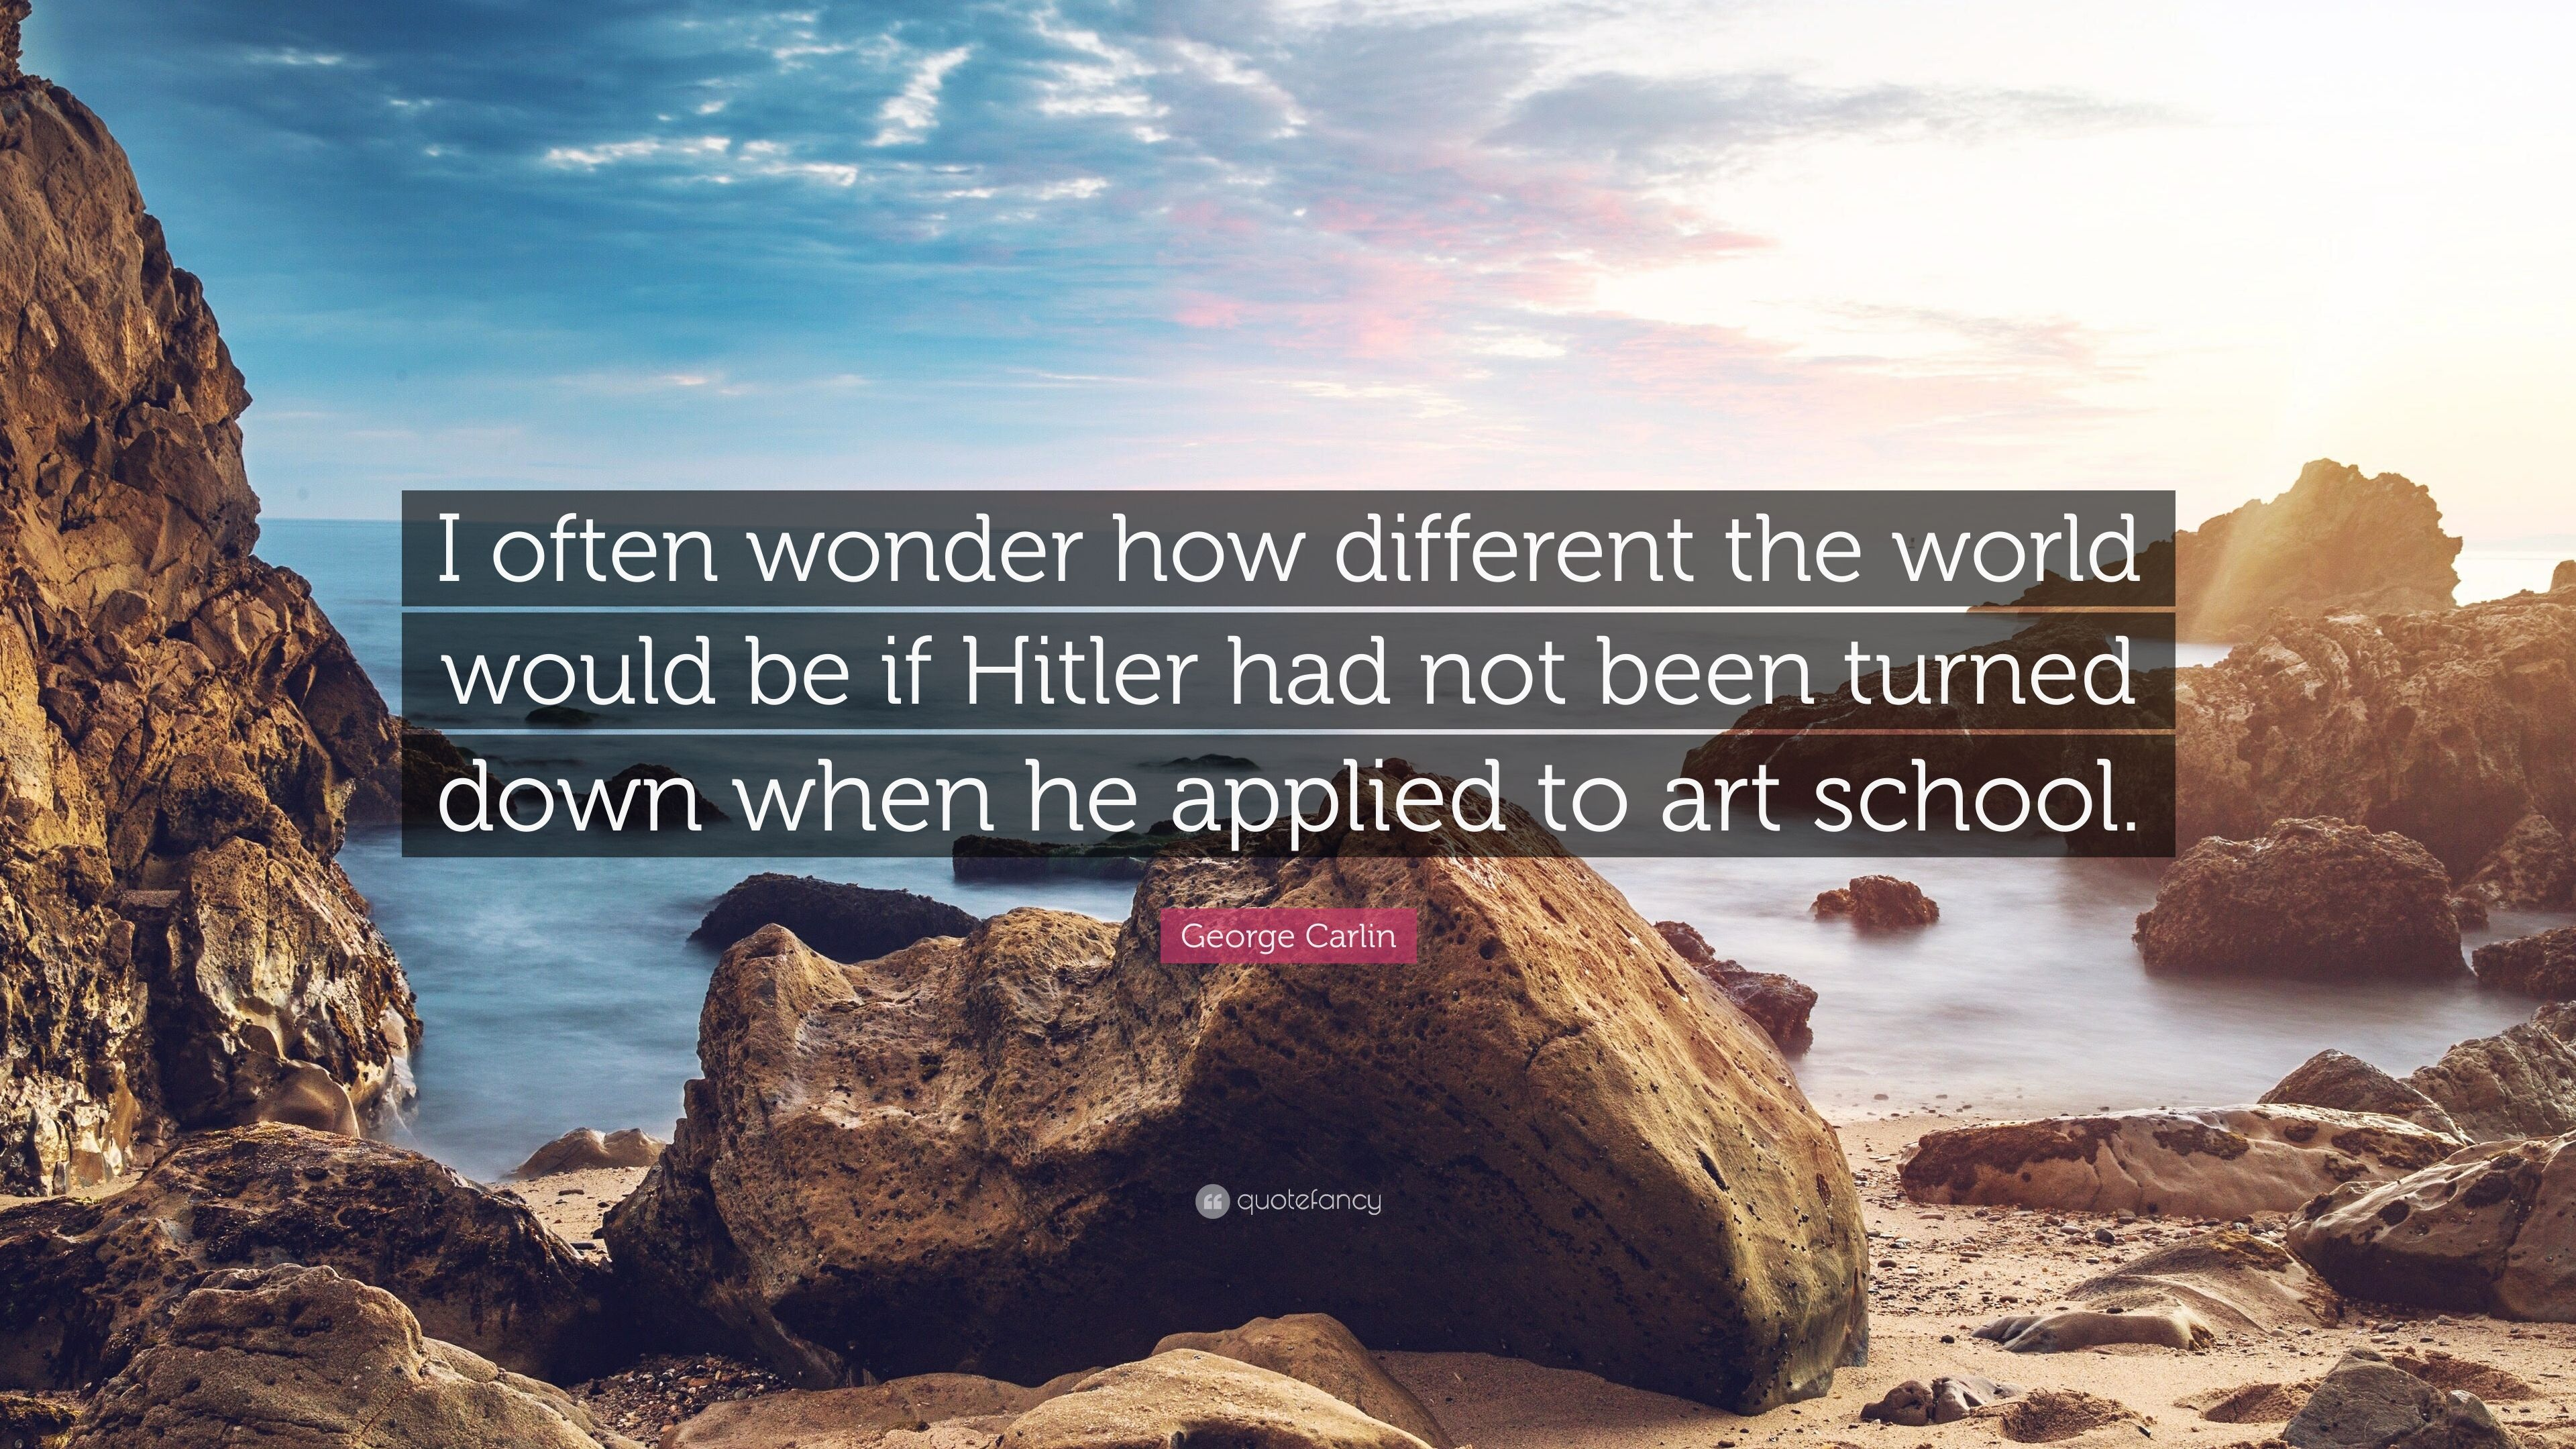 George Carlin Quote I Often Wonder How Different The World Would Be If Hitler Had Not Been Turned Down When He Applied To Art School 7 Wallpapers Quotefancy